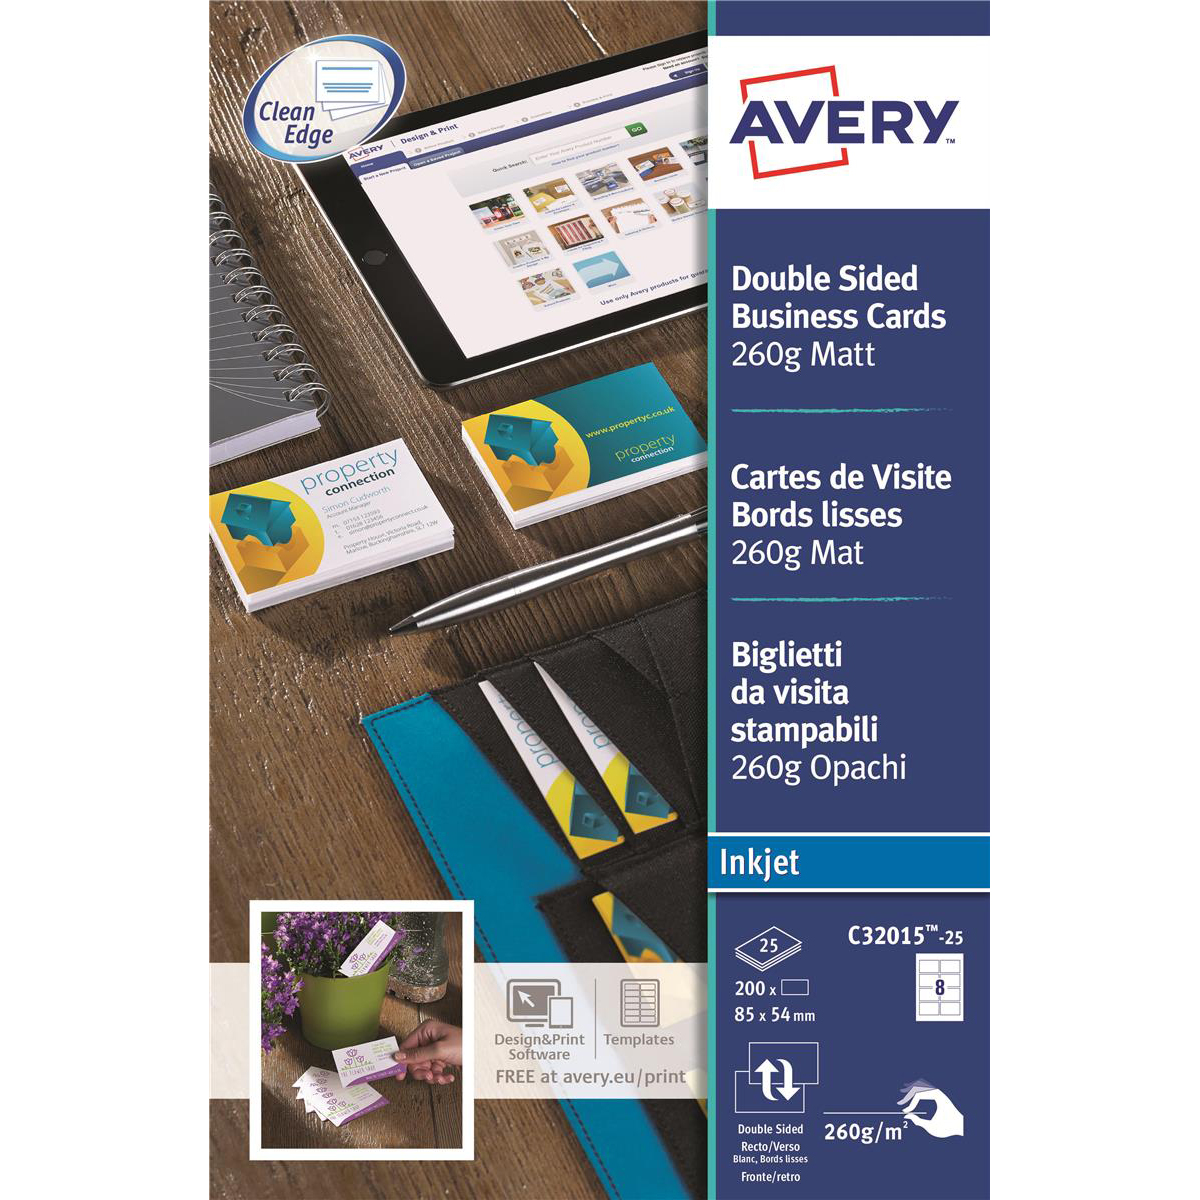 Avery quick and clean business cards inkjet 260gsm 8 per sheet matt avery quick and clean business cards inkjet 260gsm 8 per sheet matt coated ref c32015 reheart Image collections